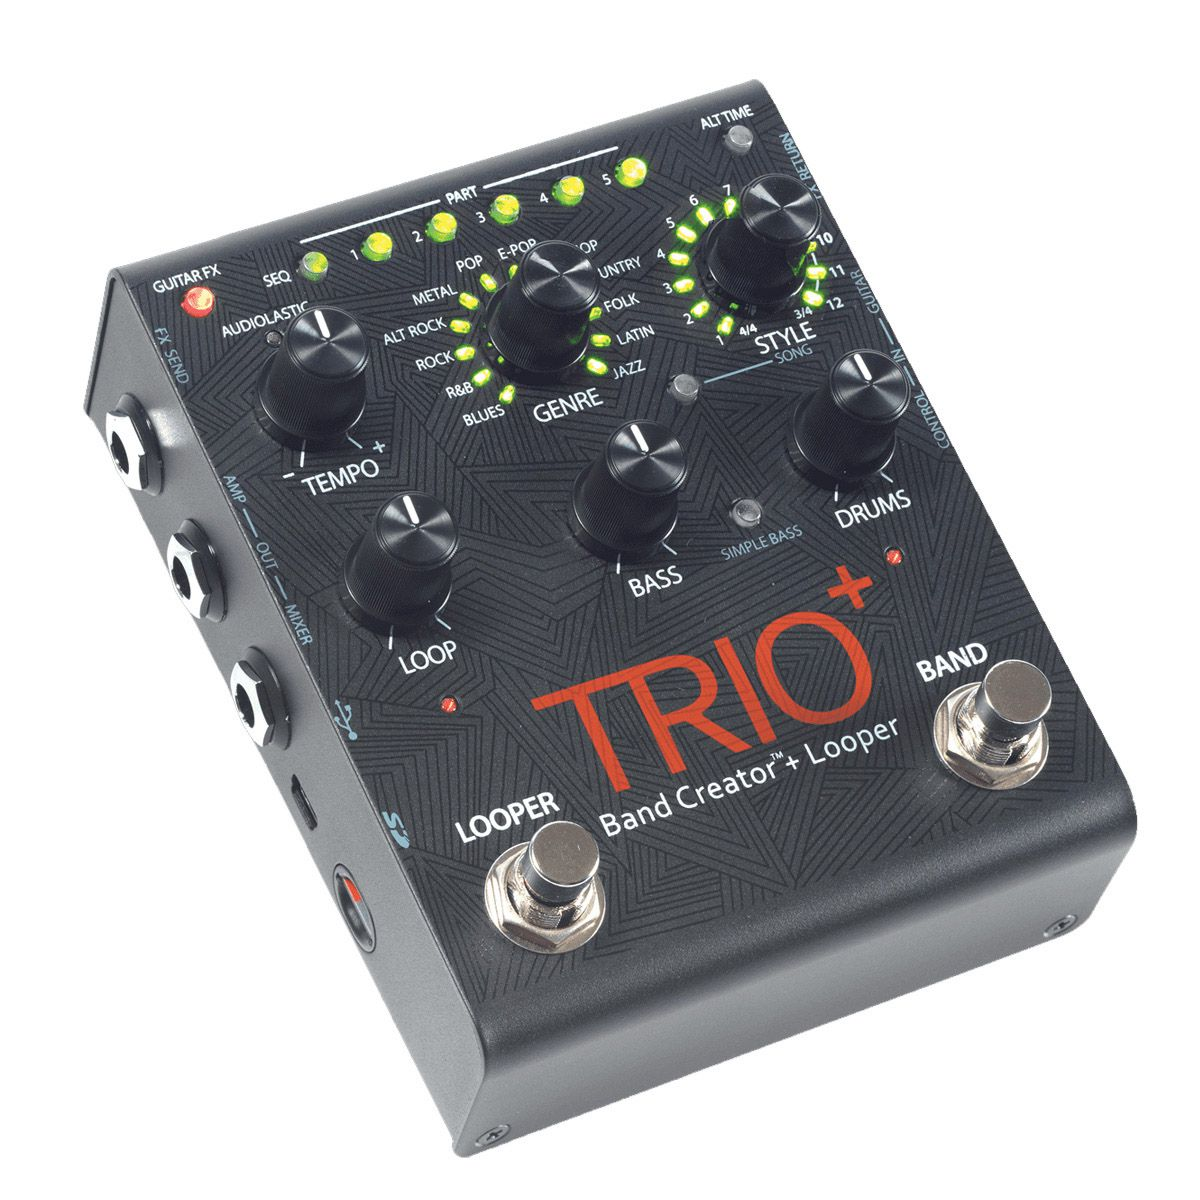 Pedal Guitarra Digitech Trio Plus Band Creator Looper